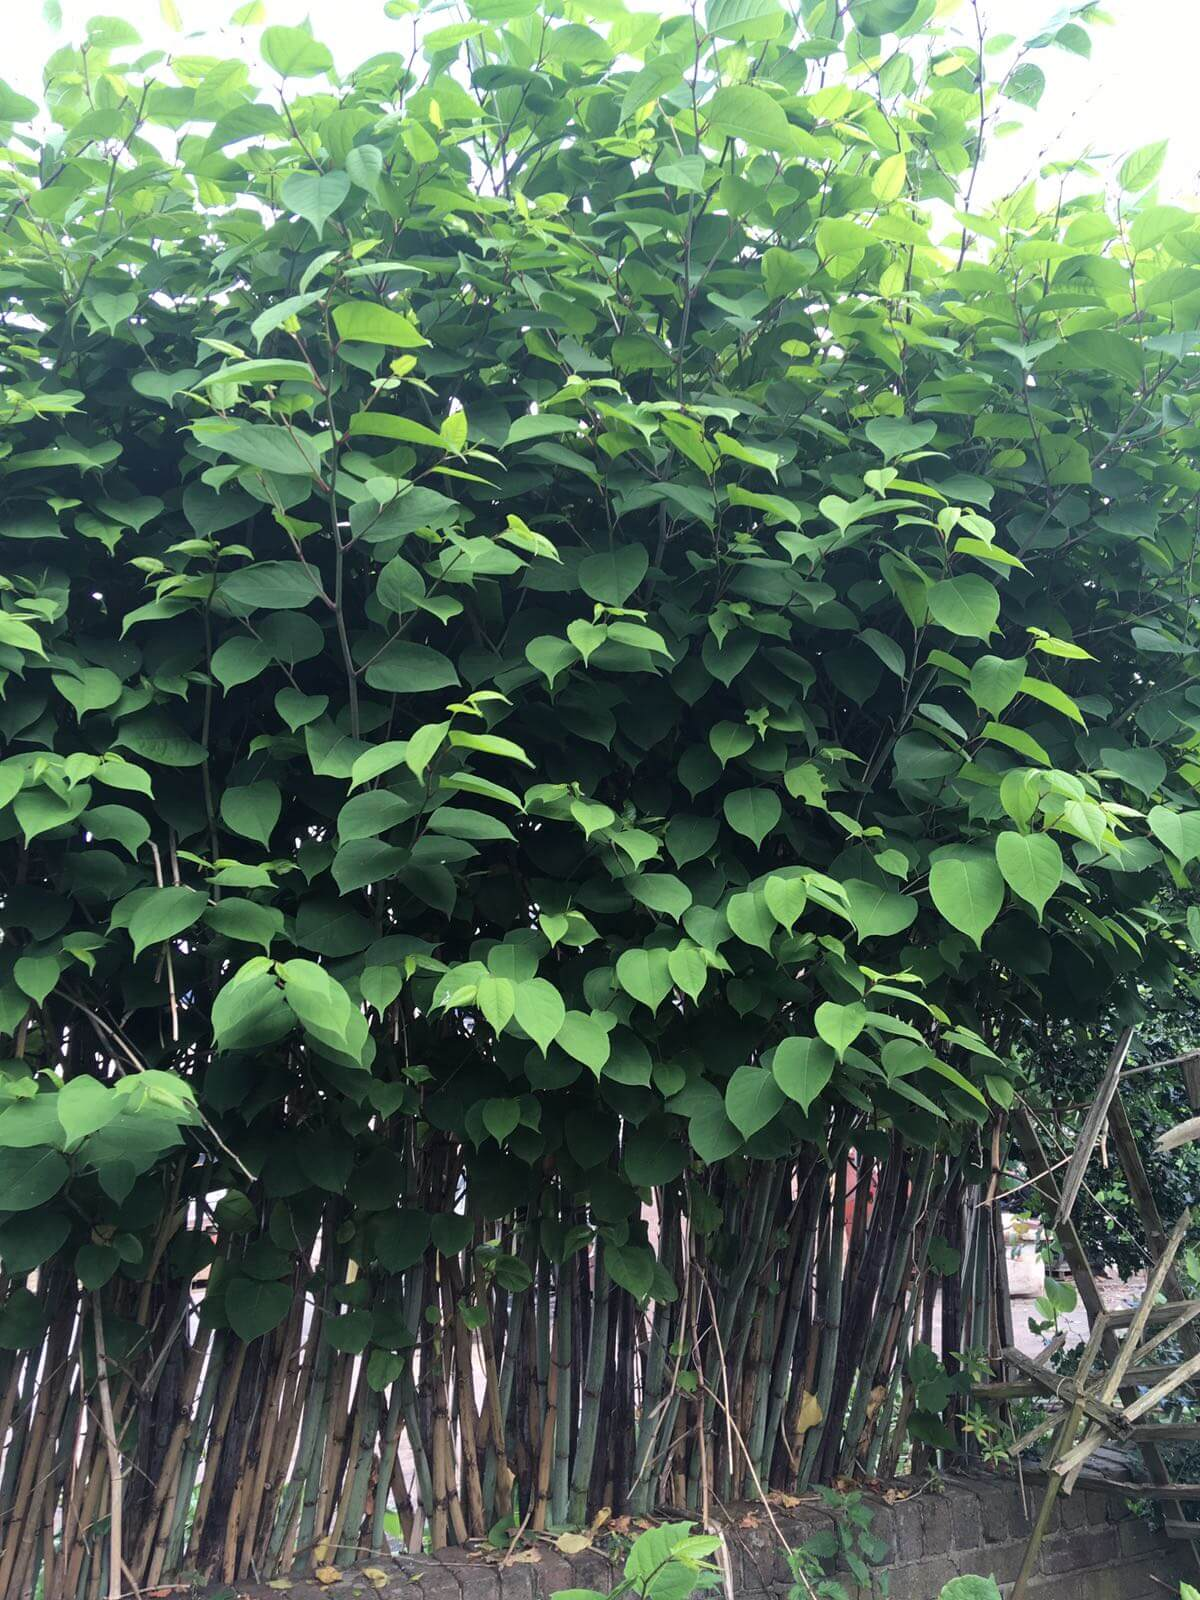 Eradication of Japanese Knotweed in Darlaston